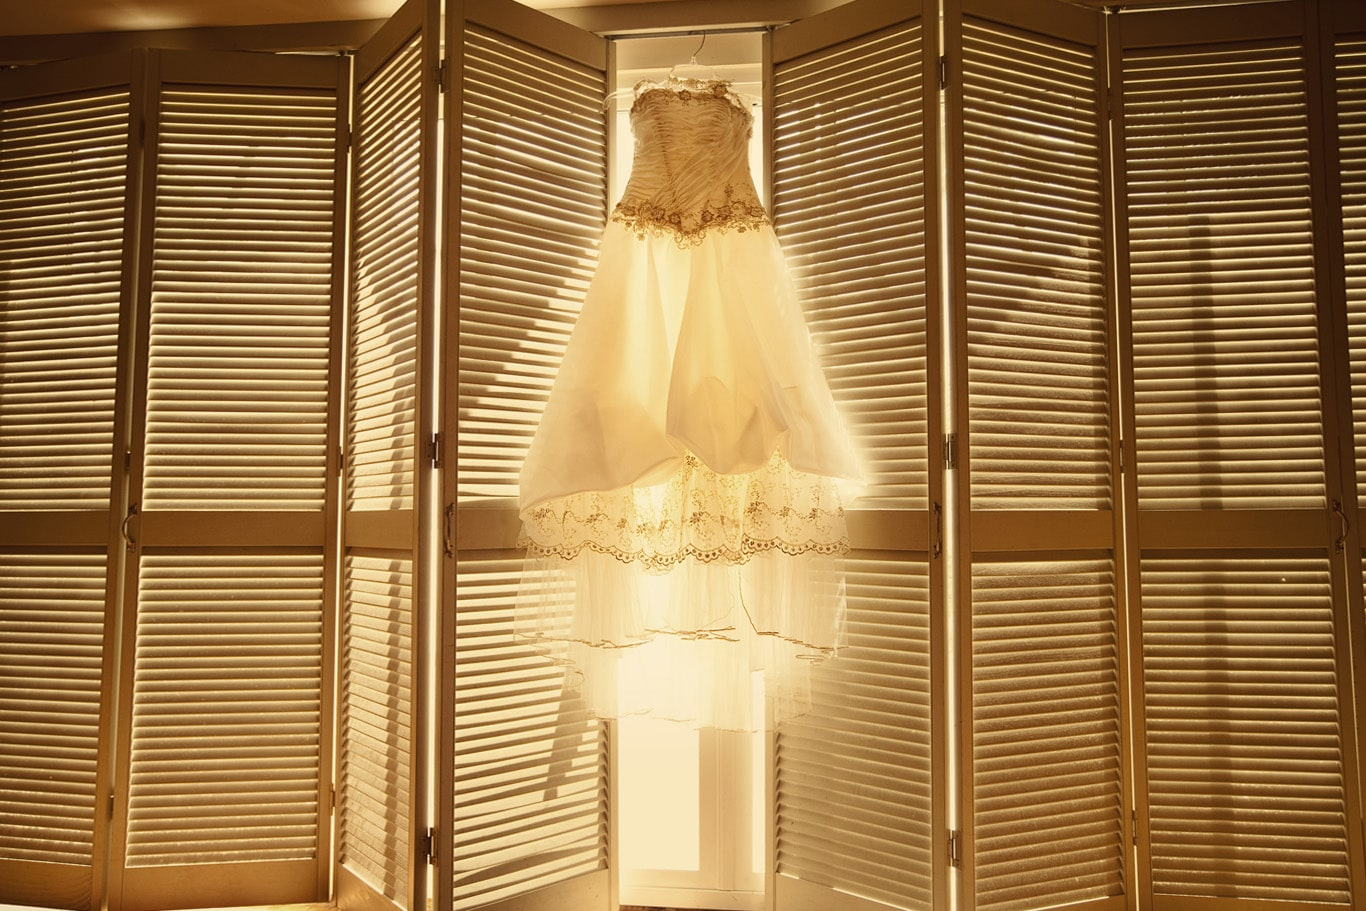 Oahu Destination Wedding Dress